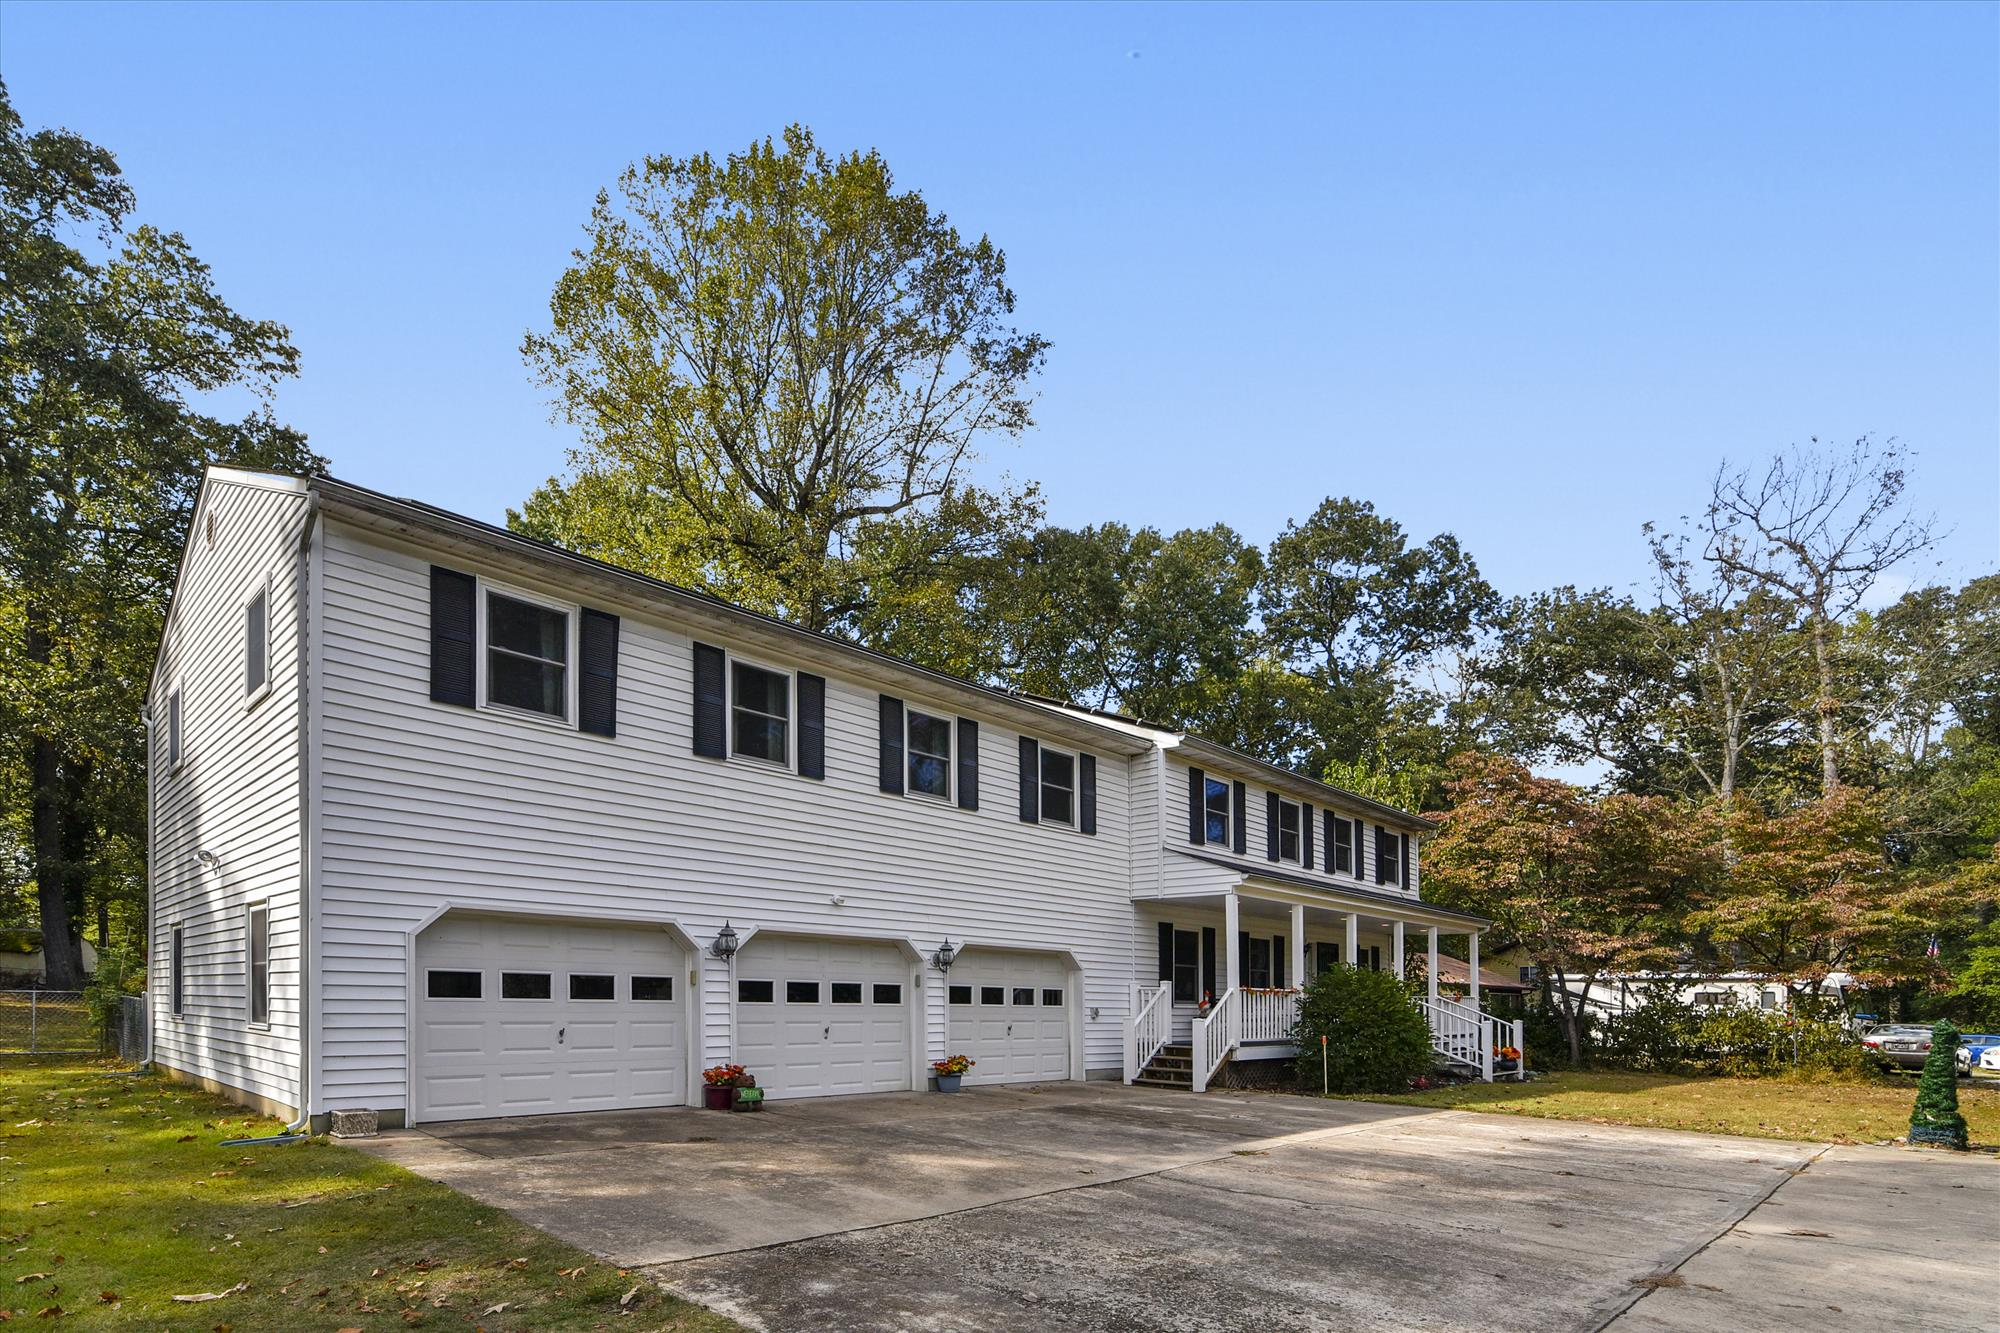 Crownsville MD home for sale near Fort Meade